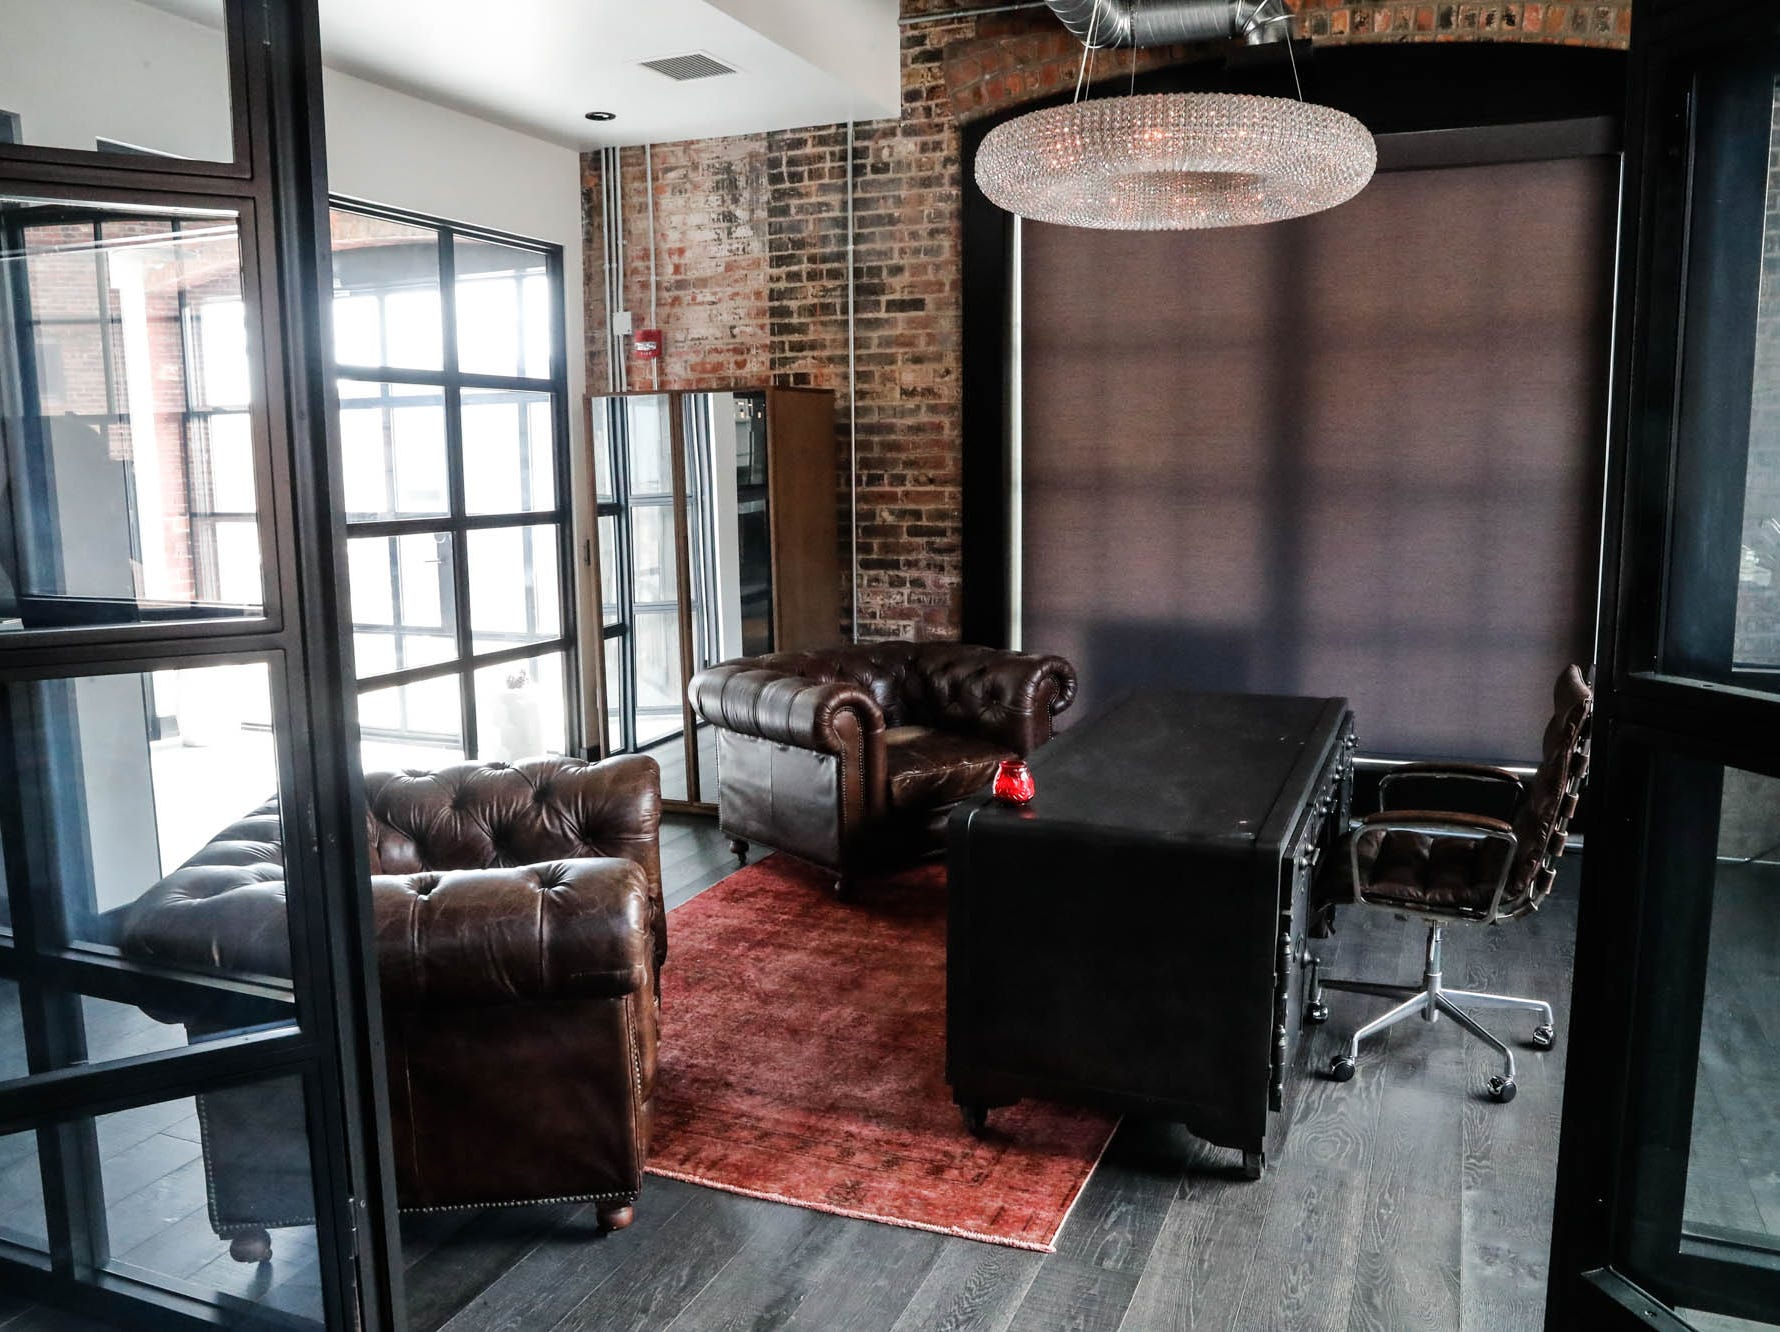 "The ""Lavish Lair,"" located inside the Blumlux Diamond Building, 740 E. North Street, Indianapolis Ind., is currently for sale and available for short term Airbnb rental, Monday, March 11, 2019. For more info: www.rentalpreneur.com, Hostsofindy.com, 317-797-2525."